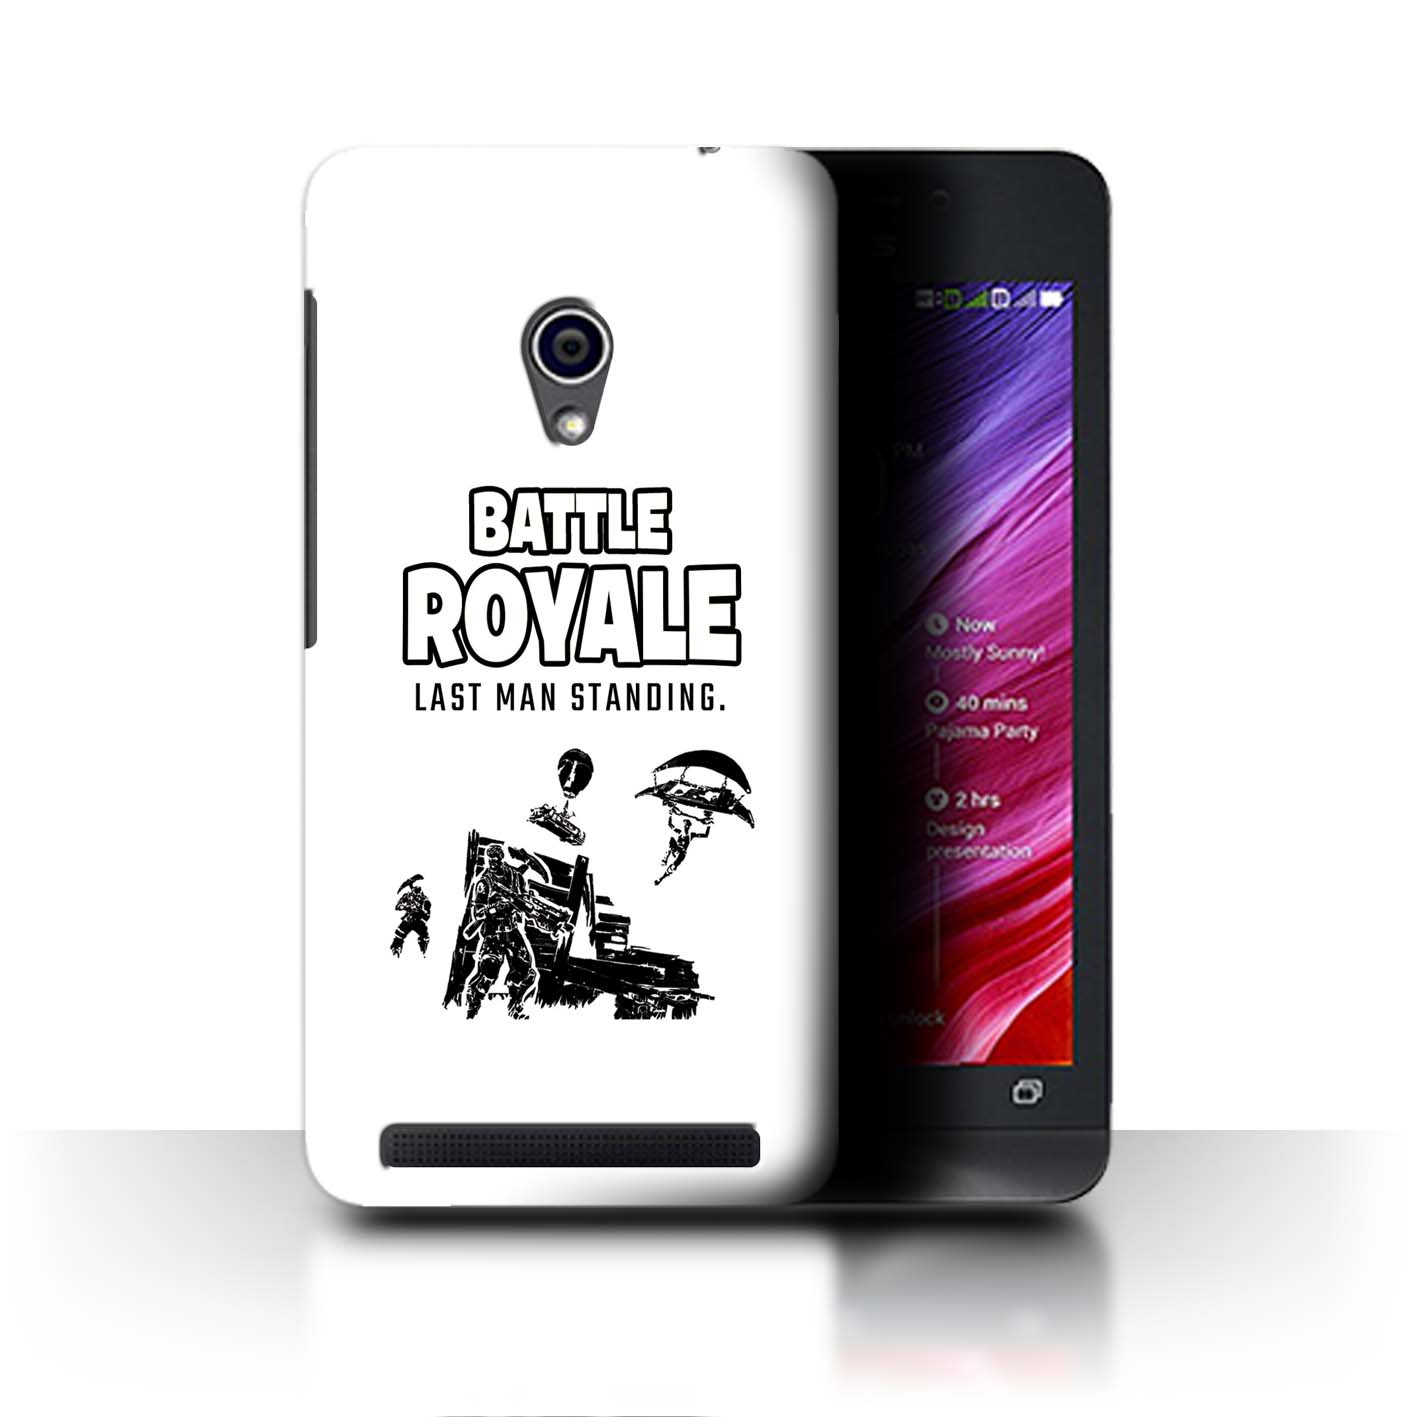 STUFF4-Phone-Case-Back-Cover-for-Asus-Zenfone-4-A450CG-FN-Battle-Royale